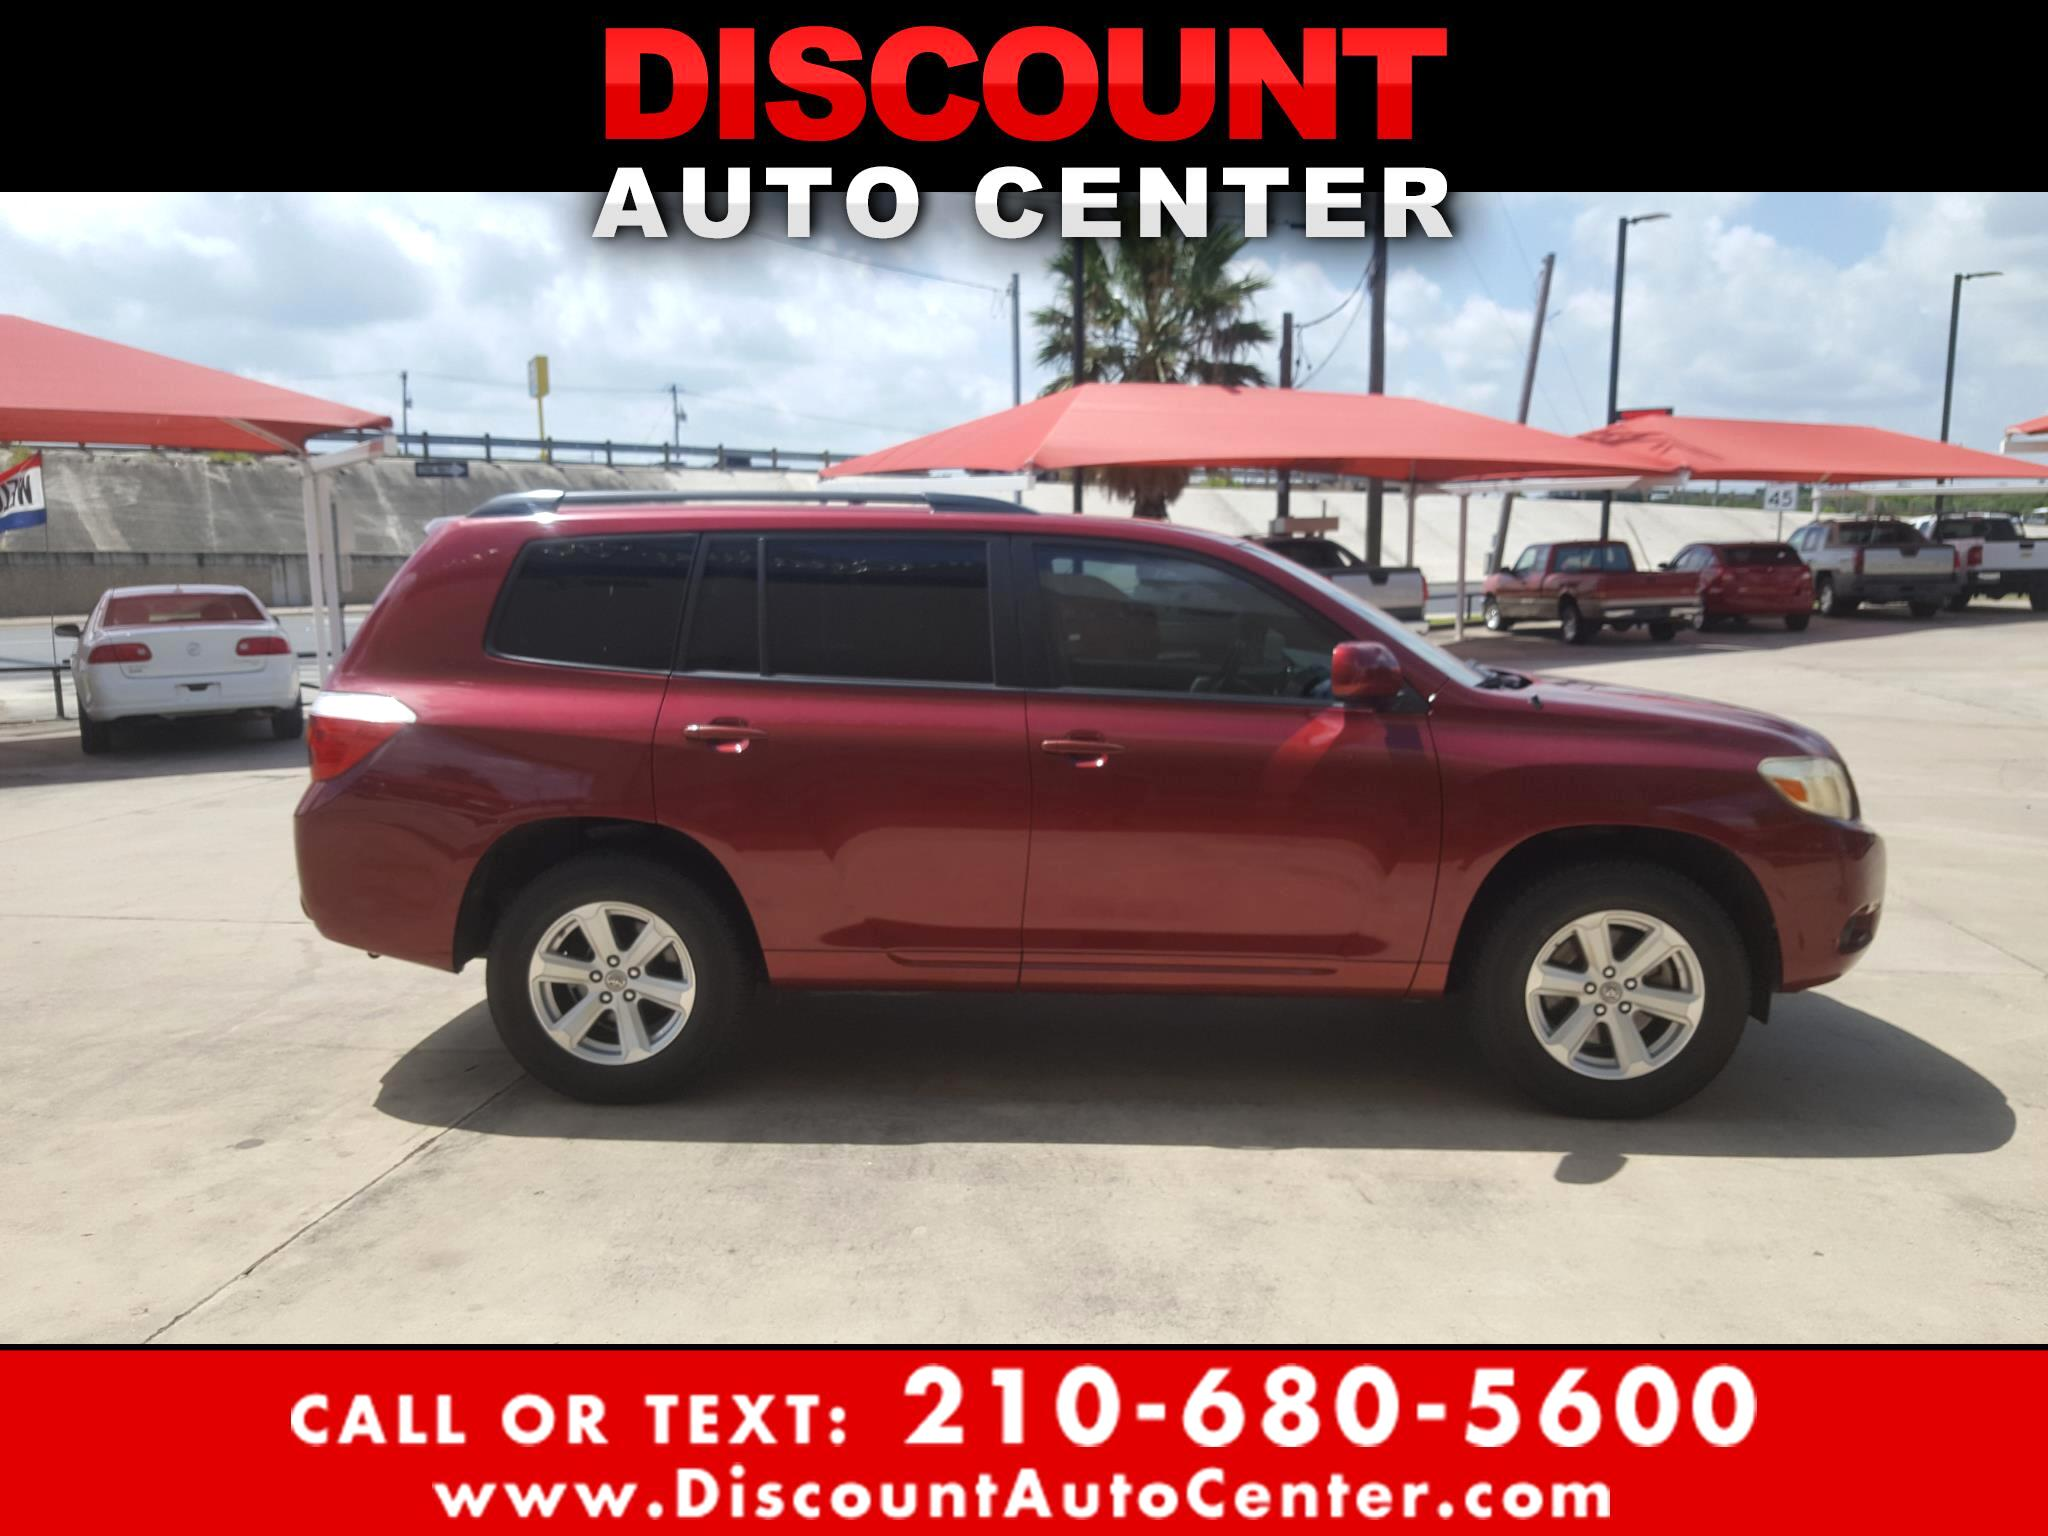 2009 Toyota Highlander FWD 4dr L4  Base (Natl)